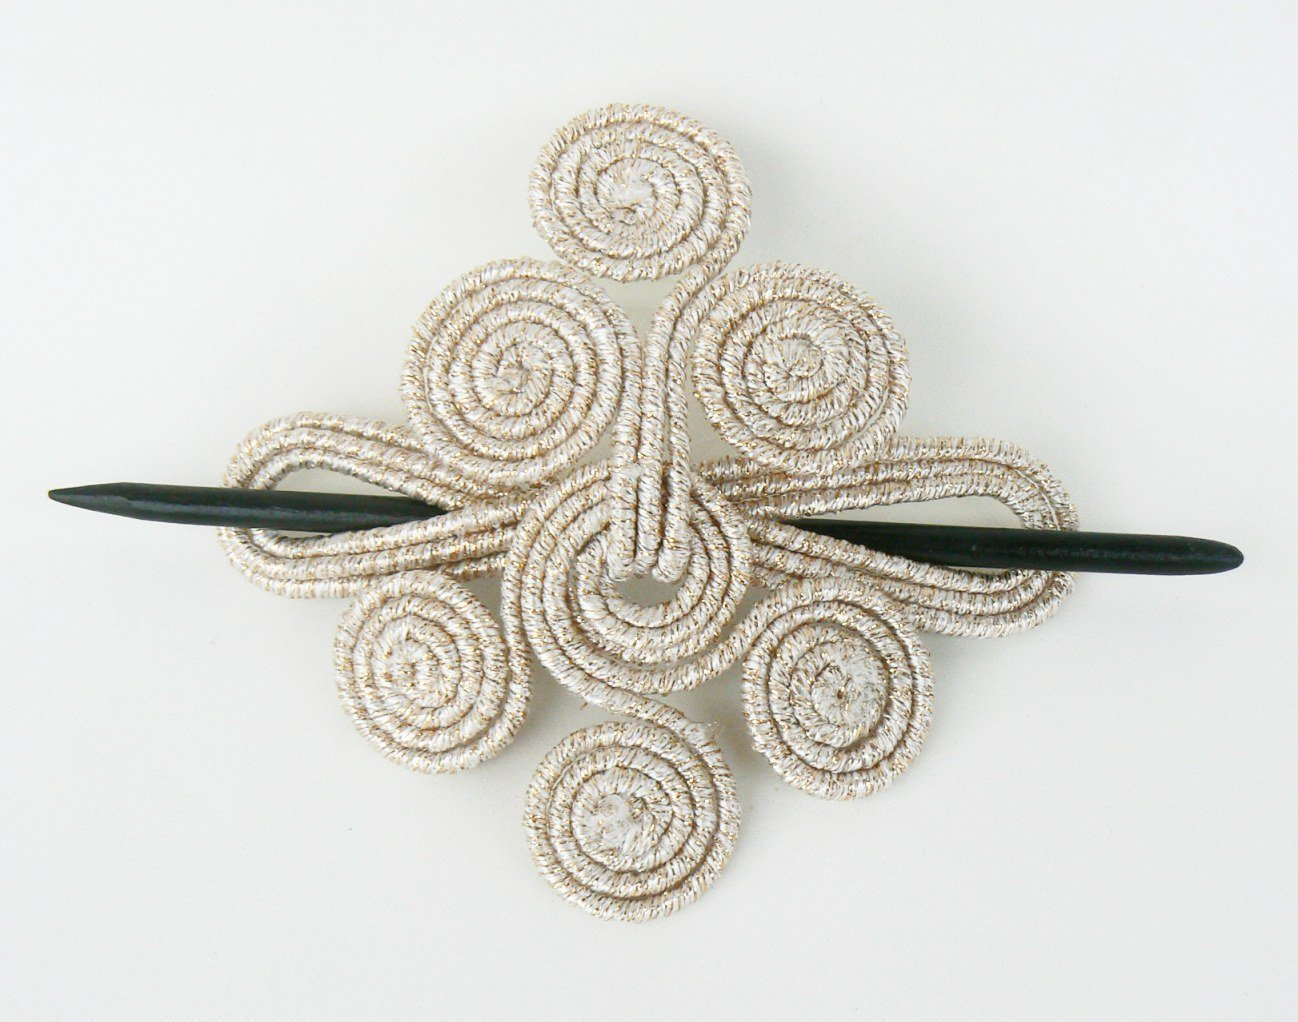 Slide barrette Artistic Hair stick accessory Shawl pin brooch Wire fascinator Headdress Gold